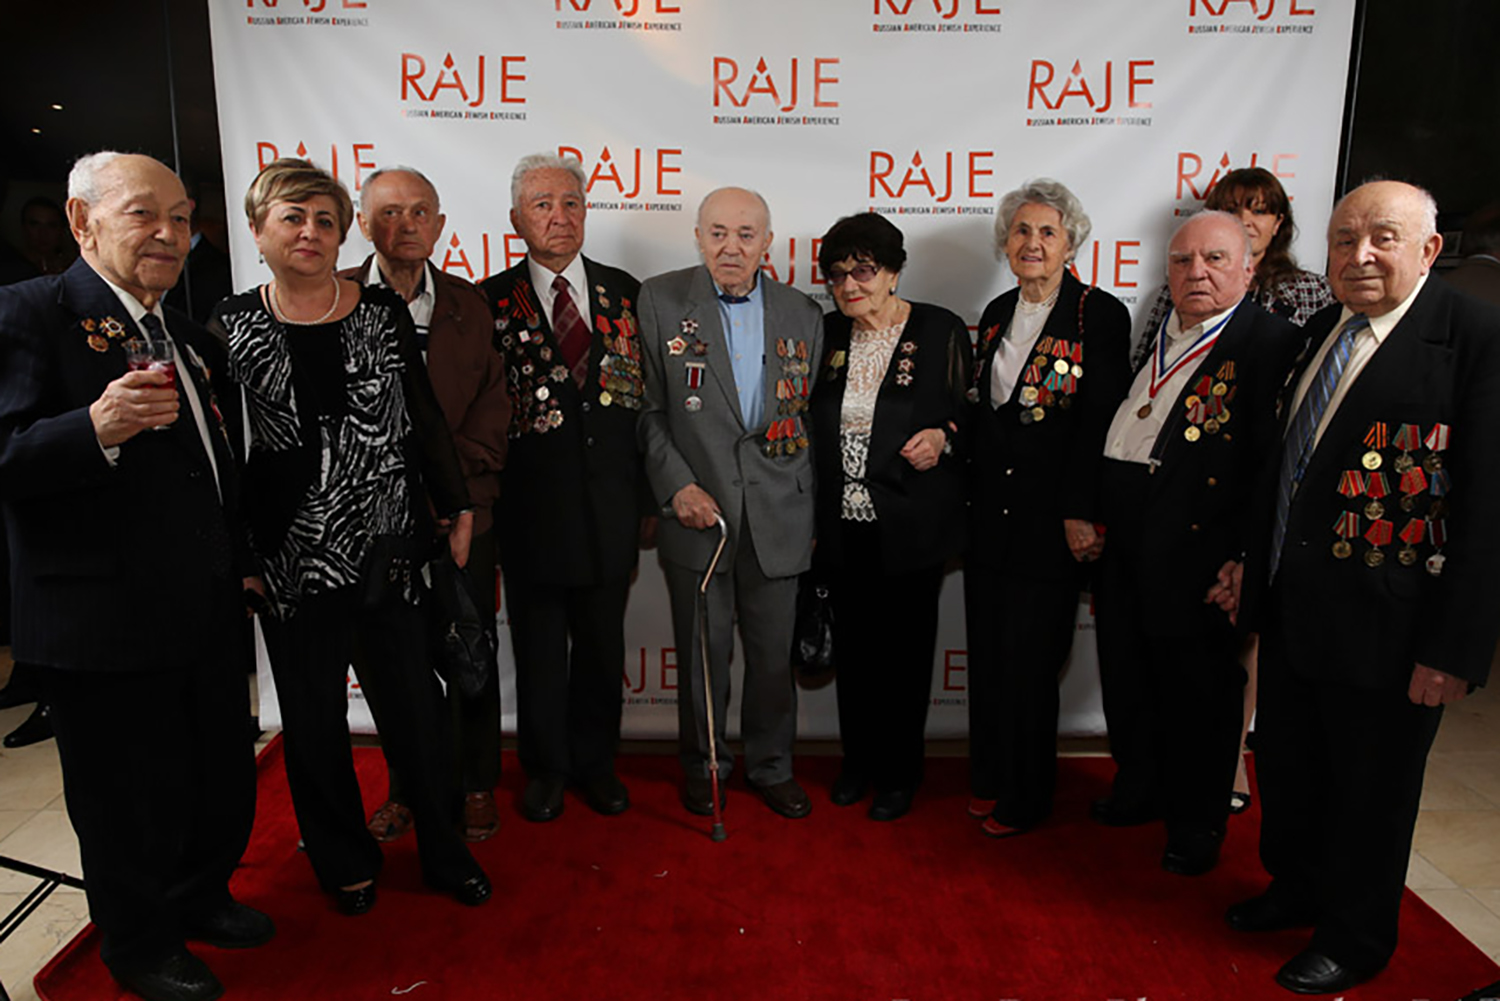 RAJE 6th Annual Dinner201405280380377_web.jpg